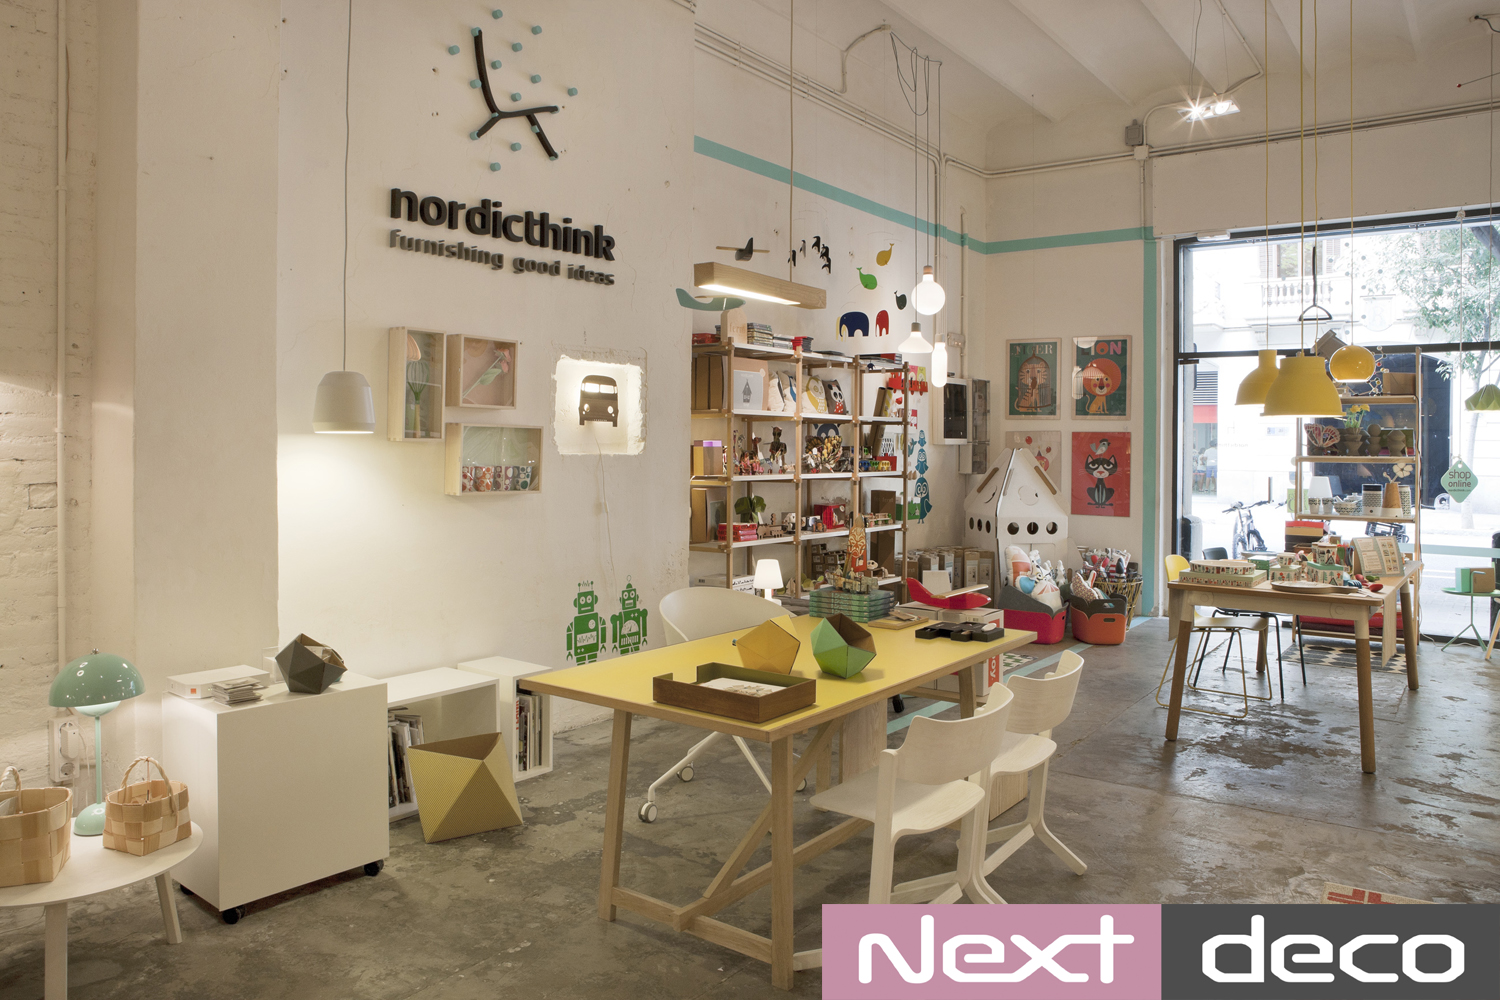 Nordicthink-decoracion-mobiliario-nextdeco copia